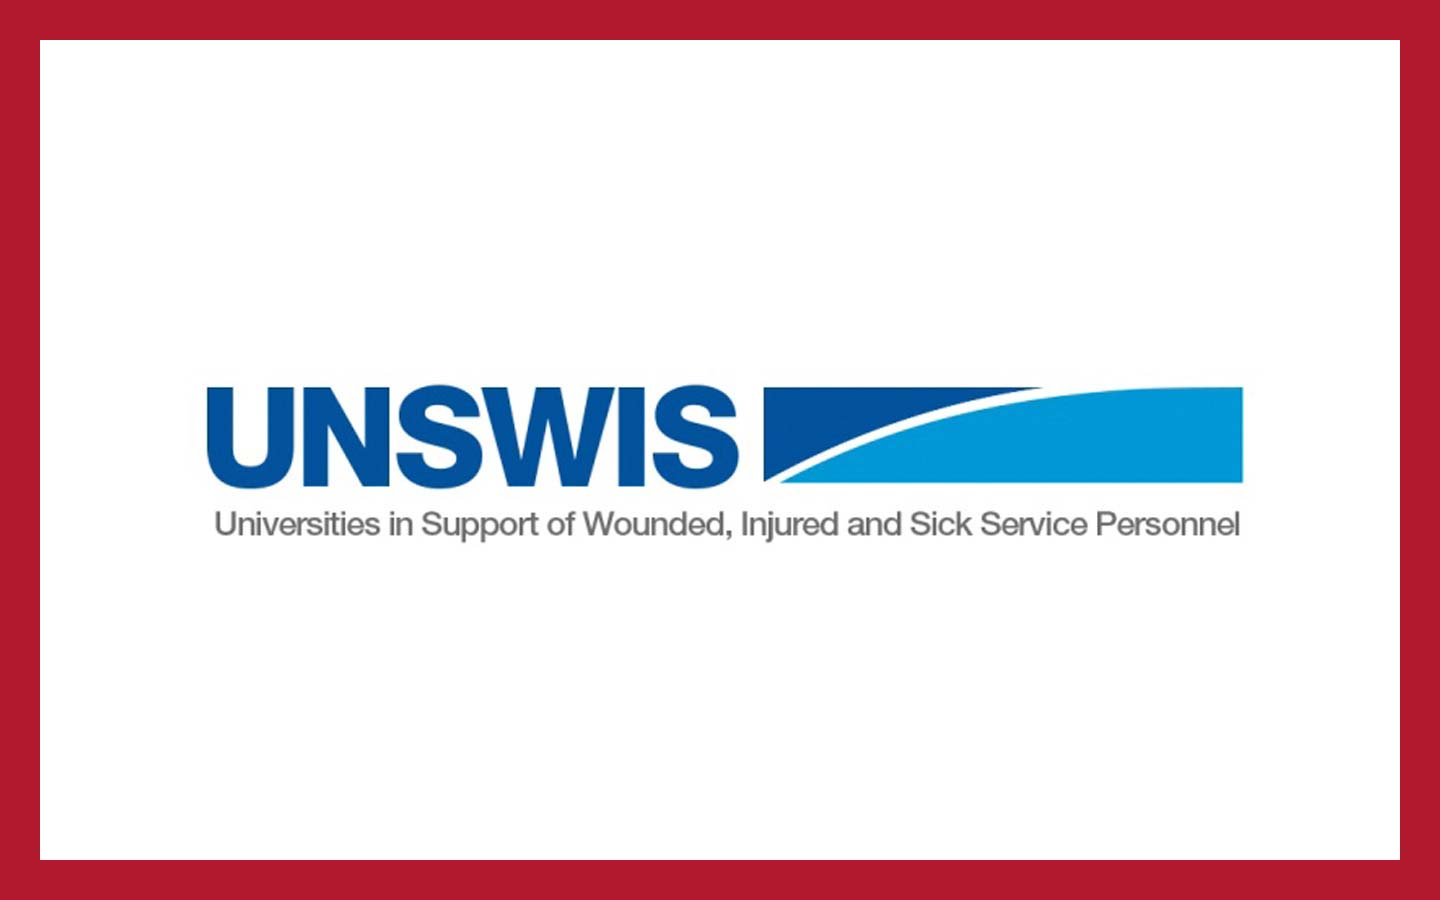 Armed Forces - UNSWIS